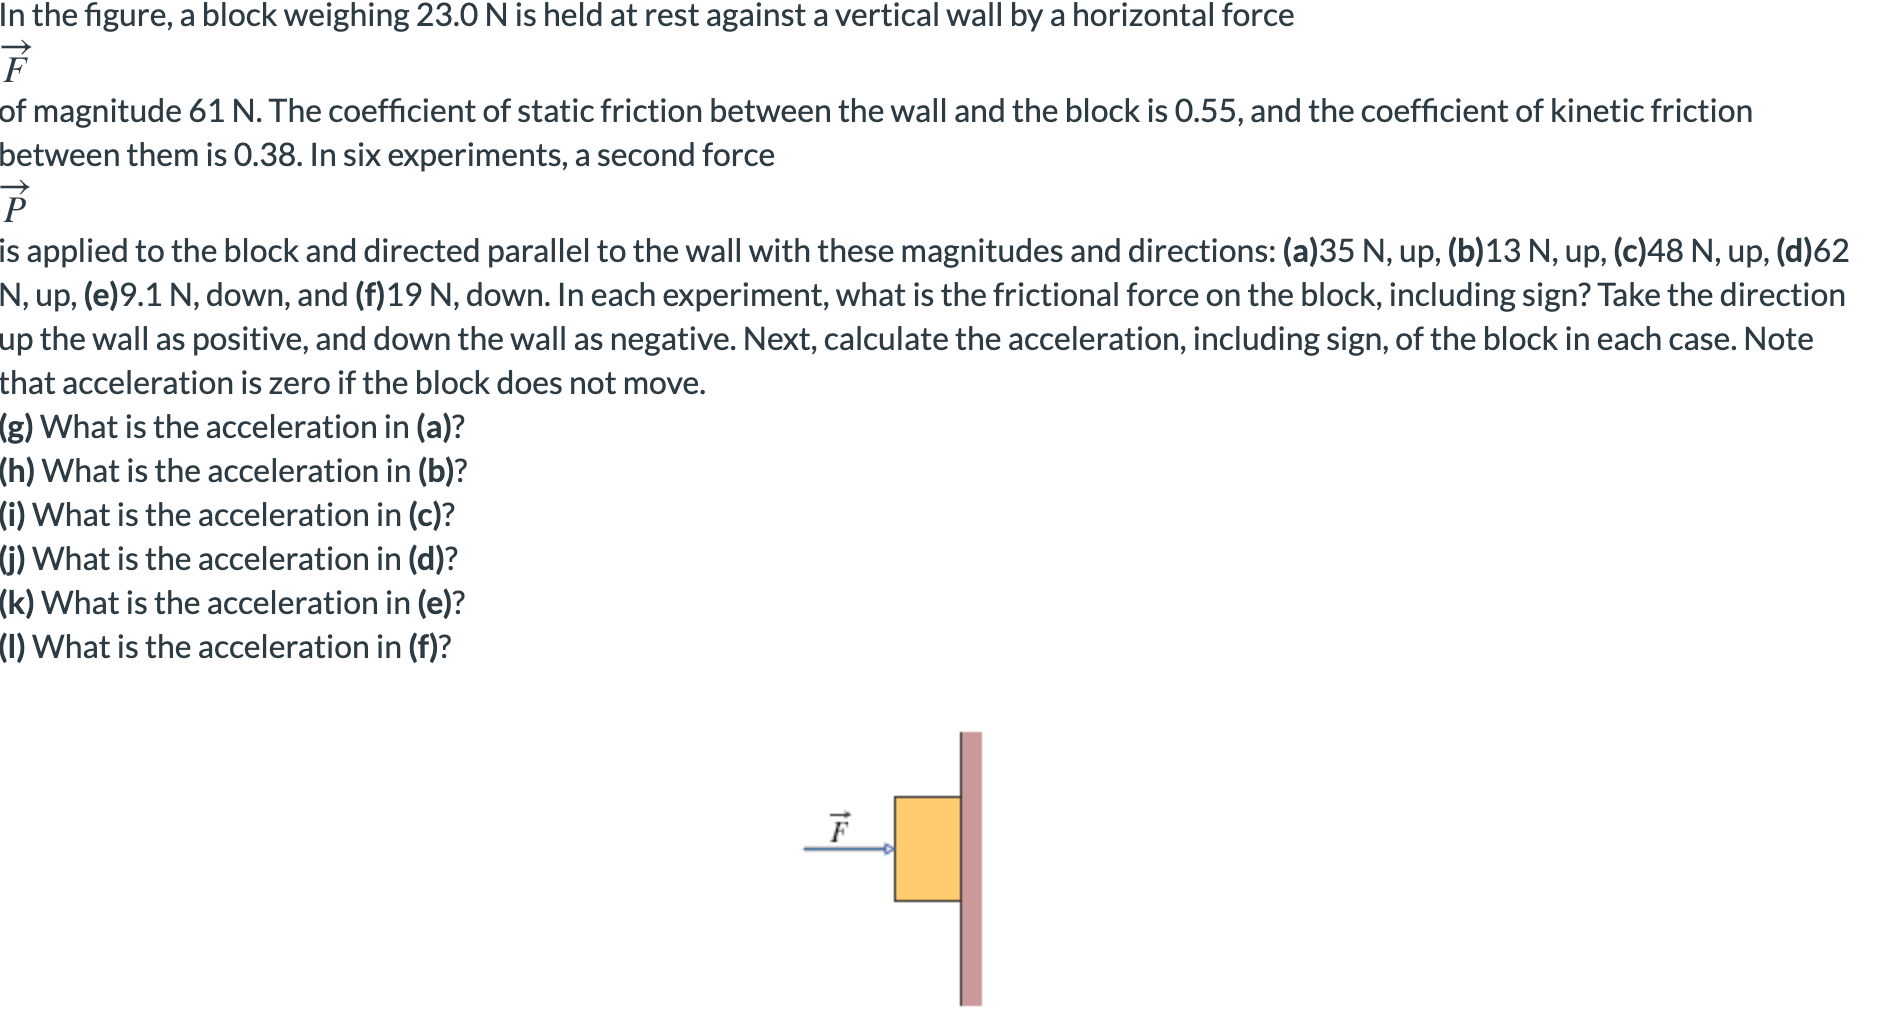 In the figure, a block weighing 23.0 N is held at rest against a vertical wall by a horizontal force of magnitude 61 N. The coefficient of static friction between the wall and the block is 0.55, and the coefficient of kinetic friction between them is 0.38. In six experiments, a second force P is applied to the block and directed parallel to the wall with these magnitudes and directions: (a)35 N, up, (b) 13 N, up, (c)48 N, up, (d)62 N, up, (e)9.1 N, down, and (f)19 N, down. In each experiment, what is the frictional force on the block, including sign? Take the direction up the wall as positive, and down the wall as negative. Next, calculate the acceleration, including sign, of the block in each case. Note that acceleration is zero if the block does not move. (g) What is the acceleration in (a)? (h) What is the acceleration in (b)? (i) What is the acceleration in (c)? (i) What is the acceleration in (d)? (k) What is the acceleration in (e)? (1) What is the acceleration in (f)?